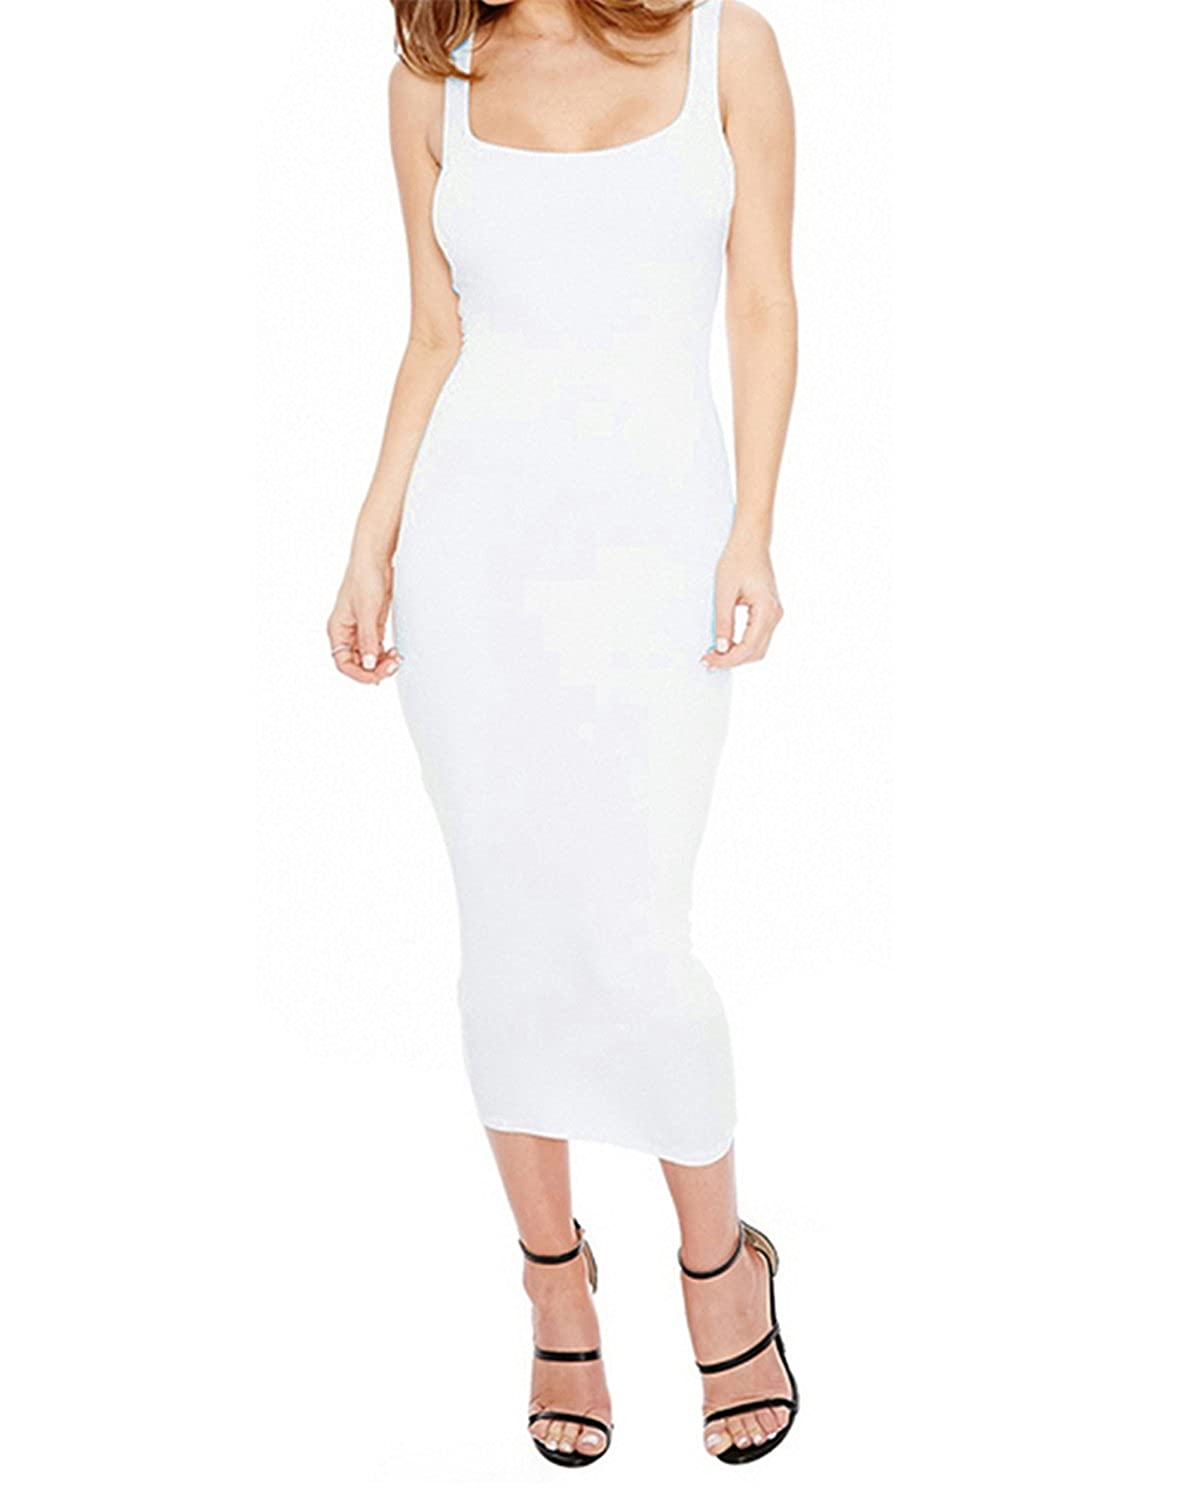 0a2a2fc703f1 GAMISS Women Sleeveless Scoop Neck Bodycon Casual Tank Dress Slim Fit Midi  Dress (White 1, L) at Amazon Women's Clothing store: